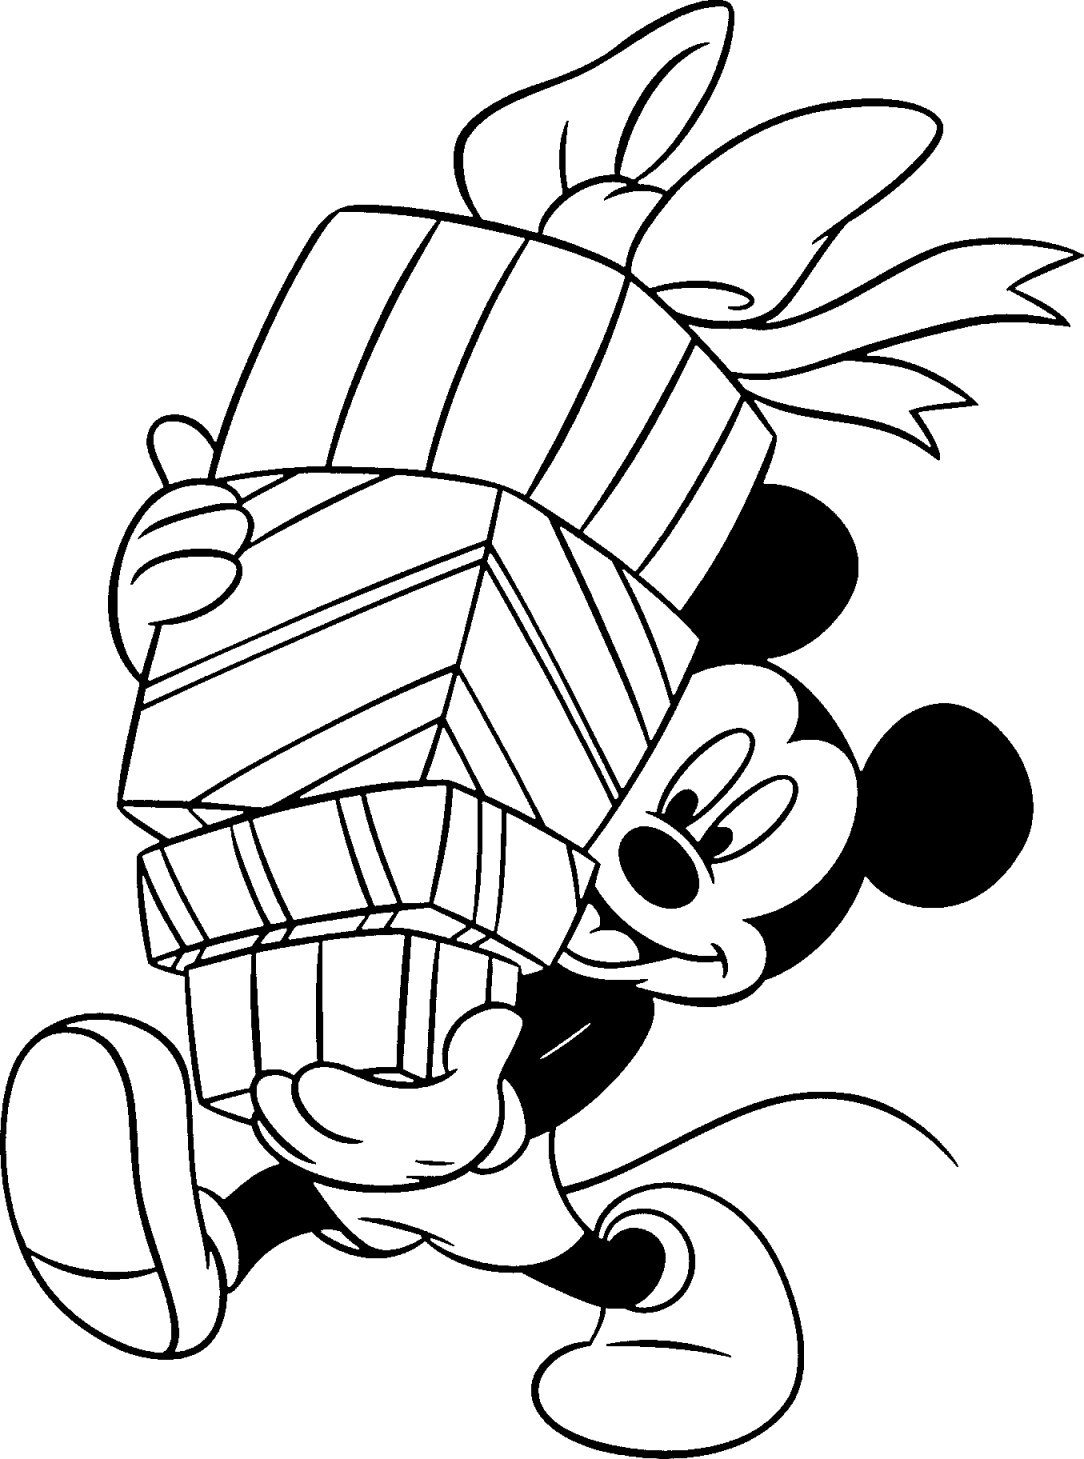 kids free printable coloring pages - photo#34